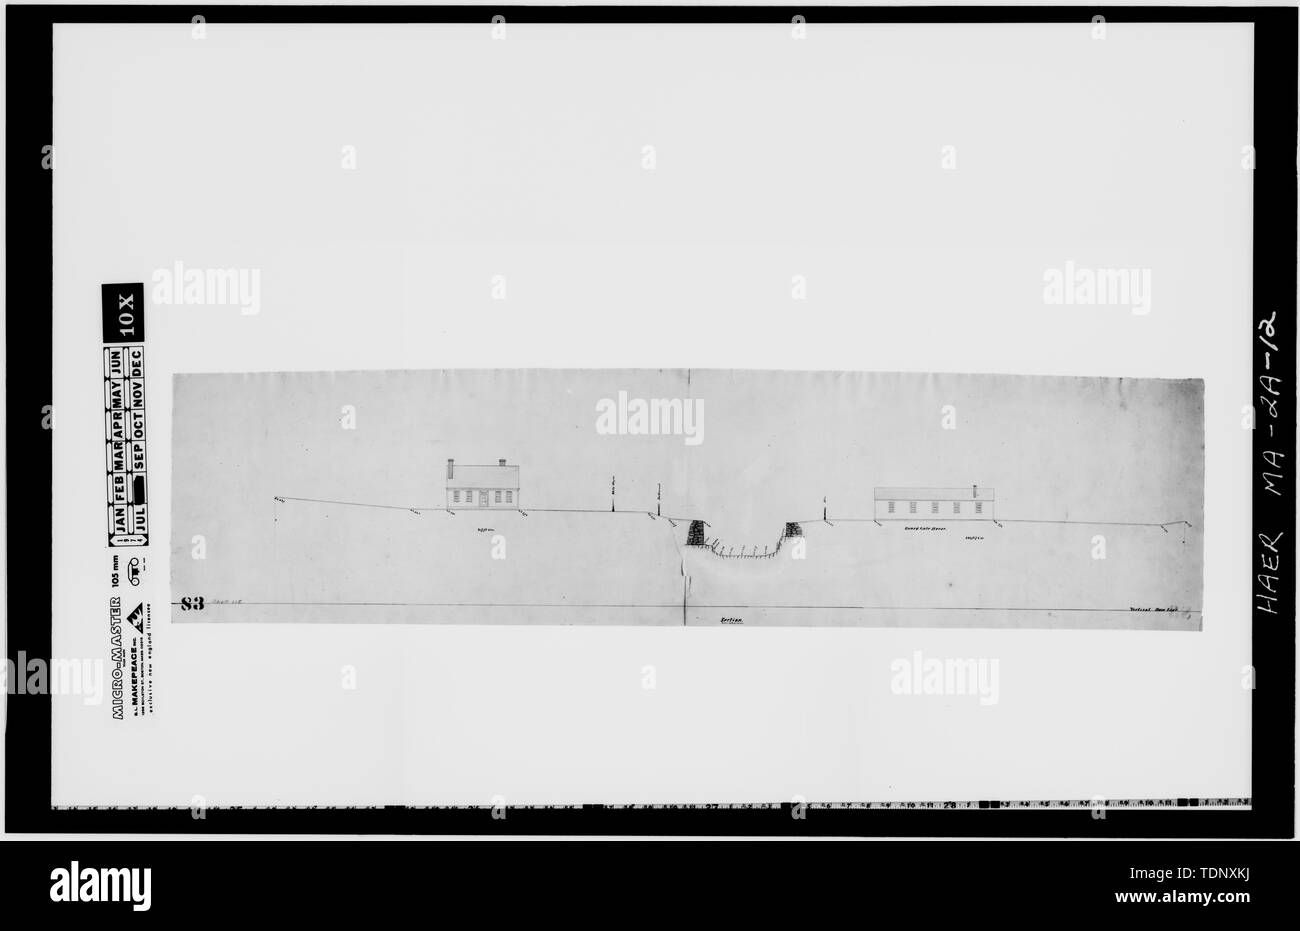 Photocopy of a drawing (original in the Collection of the PLandC, Shelf 115, Drawing 83)-ca. 1832-1848-SITE SECTION OF THE GUARD LOCKS SHOWING ORIGINAL GATE HOUSE and LOCK KEEPER' S HOUSE - Pawtucket Canal, Guard Locks, Lowell, Middlesex County, MA; Merrimack Manufacturing Company; Francis, J B; Proprietors of the Locks and Canals on the Merrimack River; Jackson, Jonathan; Tyler, Joseph; Clark, Thomas; Boott, Kirk; Lewis, Joel; Boyden, Uriah; Jackson, Patrick Tracy; Hawley, Monica E, transmitter; Boucher, Jack, photographer; Scurci, Louis R, delineator; Ventsch, Leslie, delineator; Conner, Mic - Stock Image